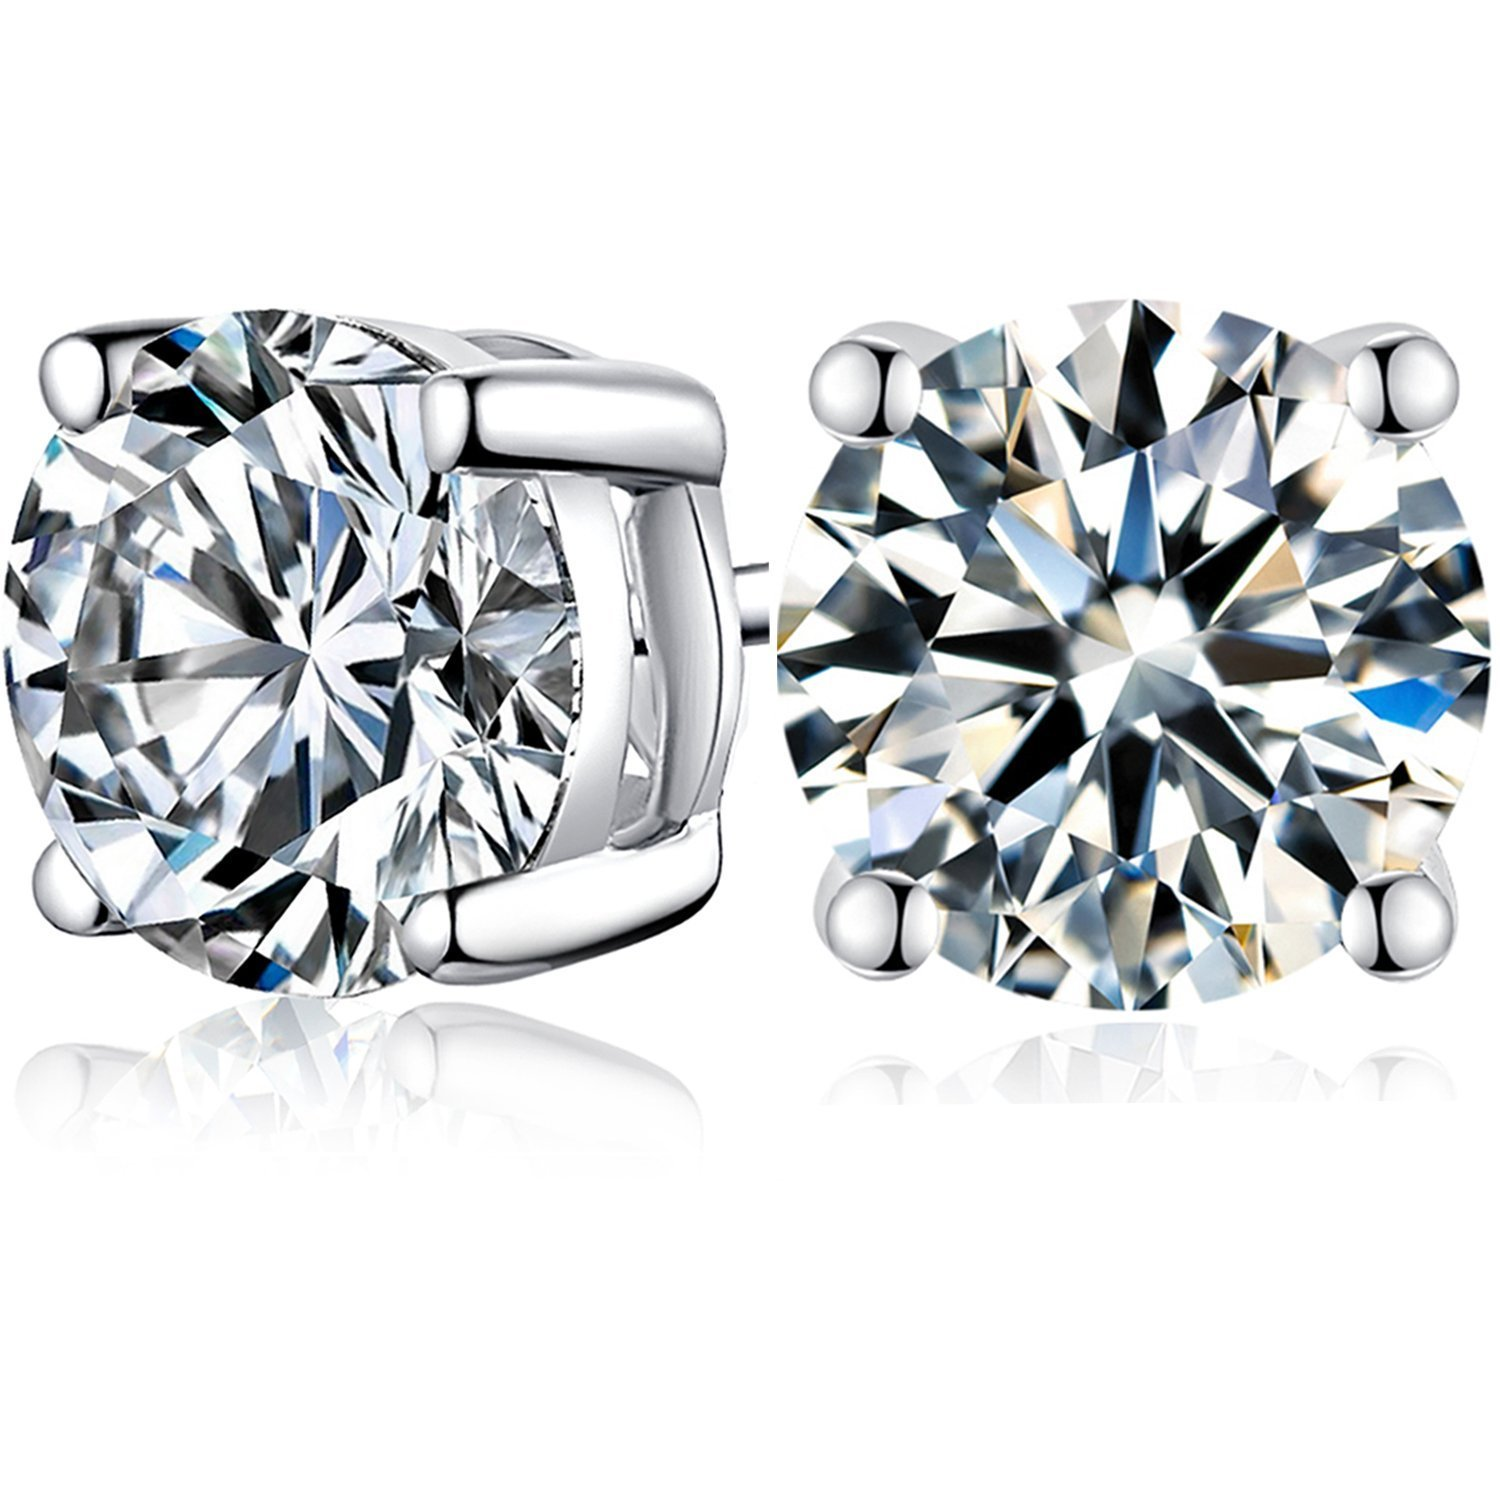 J.Fée 925 Sterling Silver Swarovski Crystal Cubic Zirconia CZ Stud Earrings Jewelry for Women Christmas Birthday Anniversary Gifts for Women Wife Friend Girlfriend Daughter Teen Gifts for Men Unisex